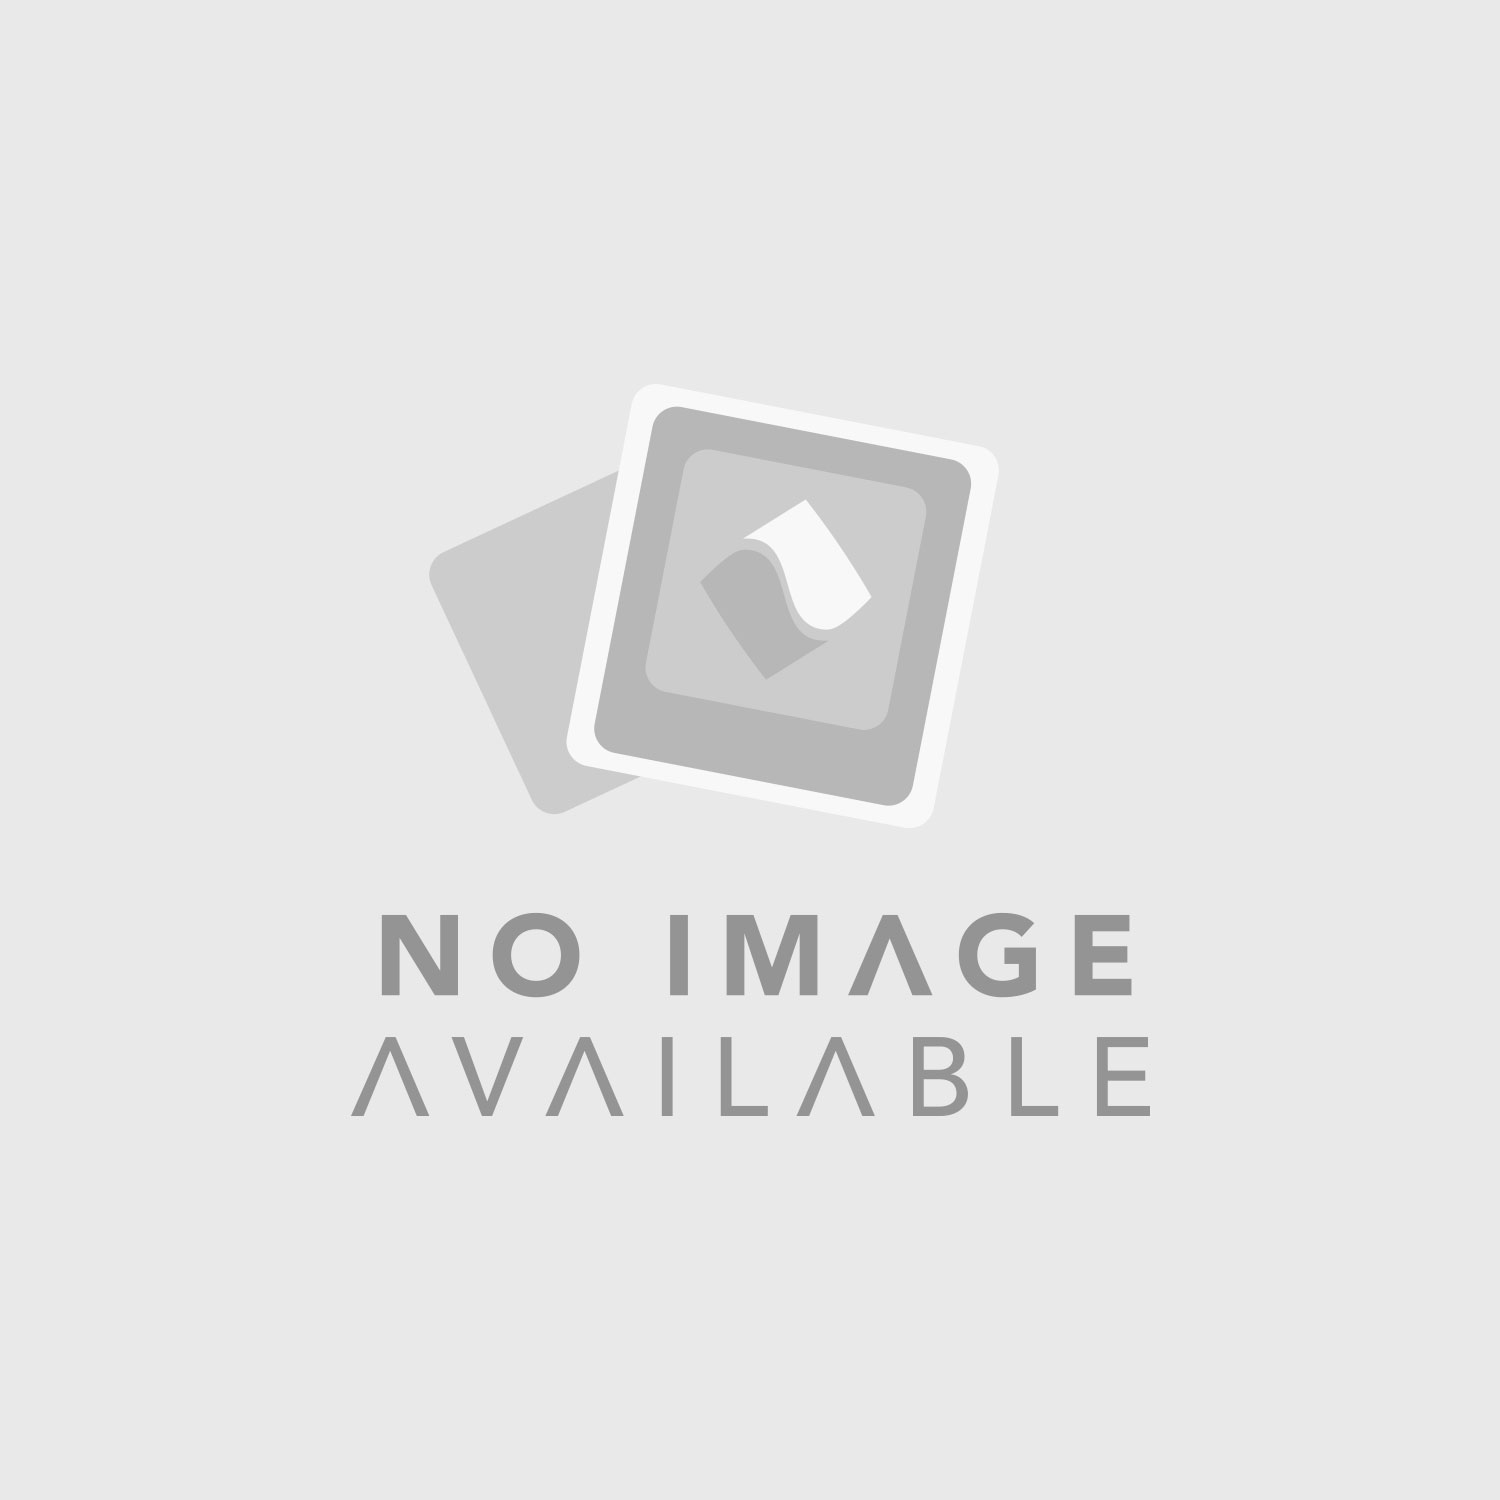 Shure AONIC 4 Sound Isolating Earphones (Black)